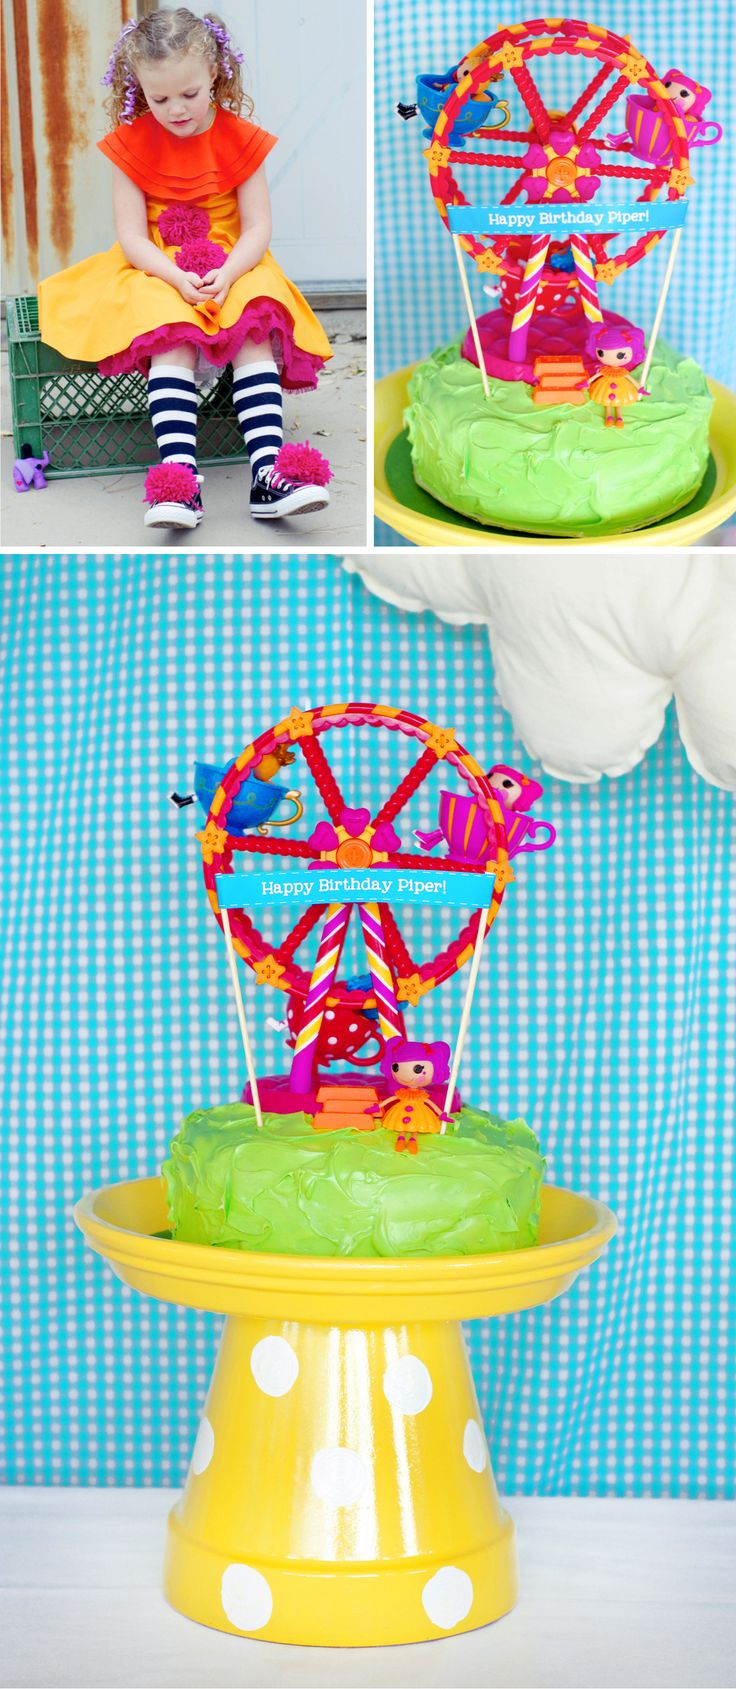 Lalaloopsy Birthday Cake stand! Turn a flower pot upside down,  paint it and Walla! Cute cake stand!#lalaloopsy